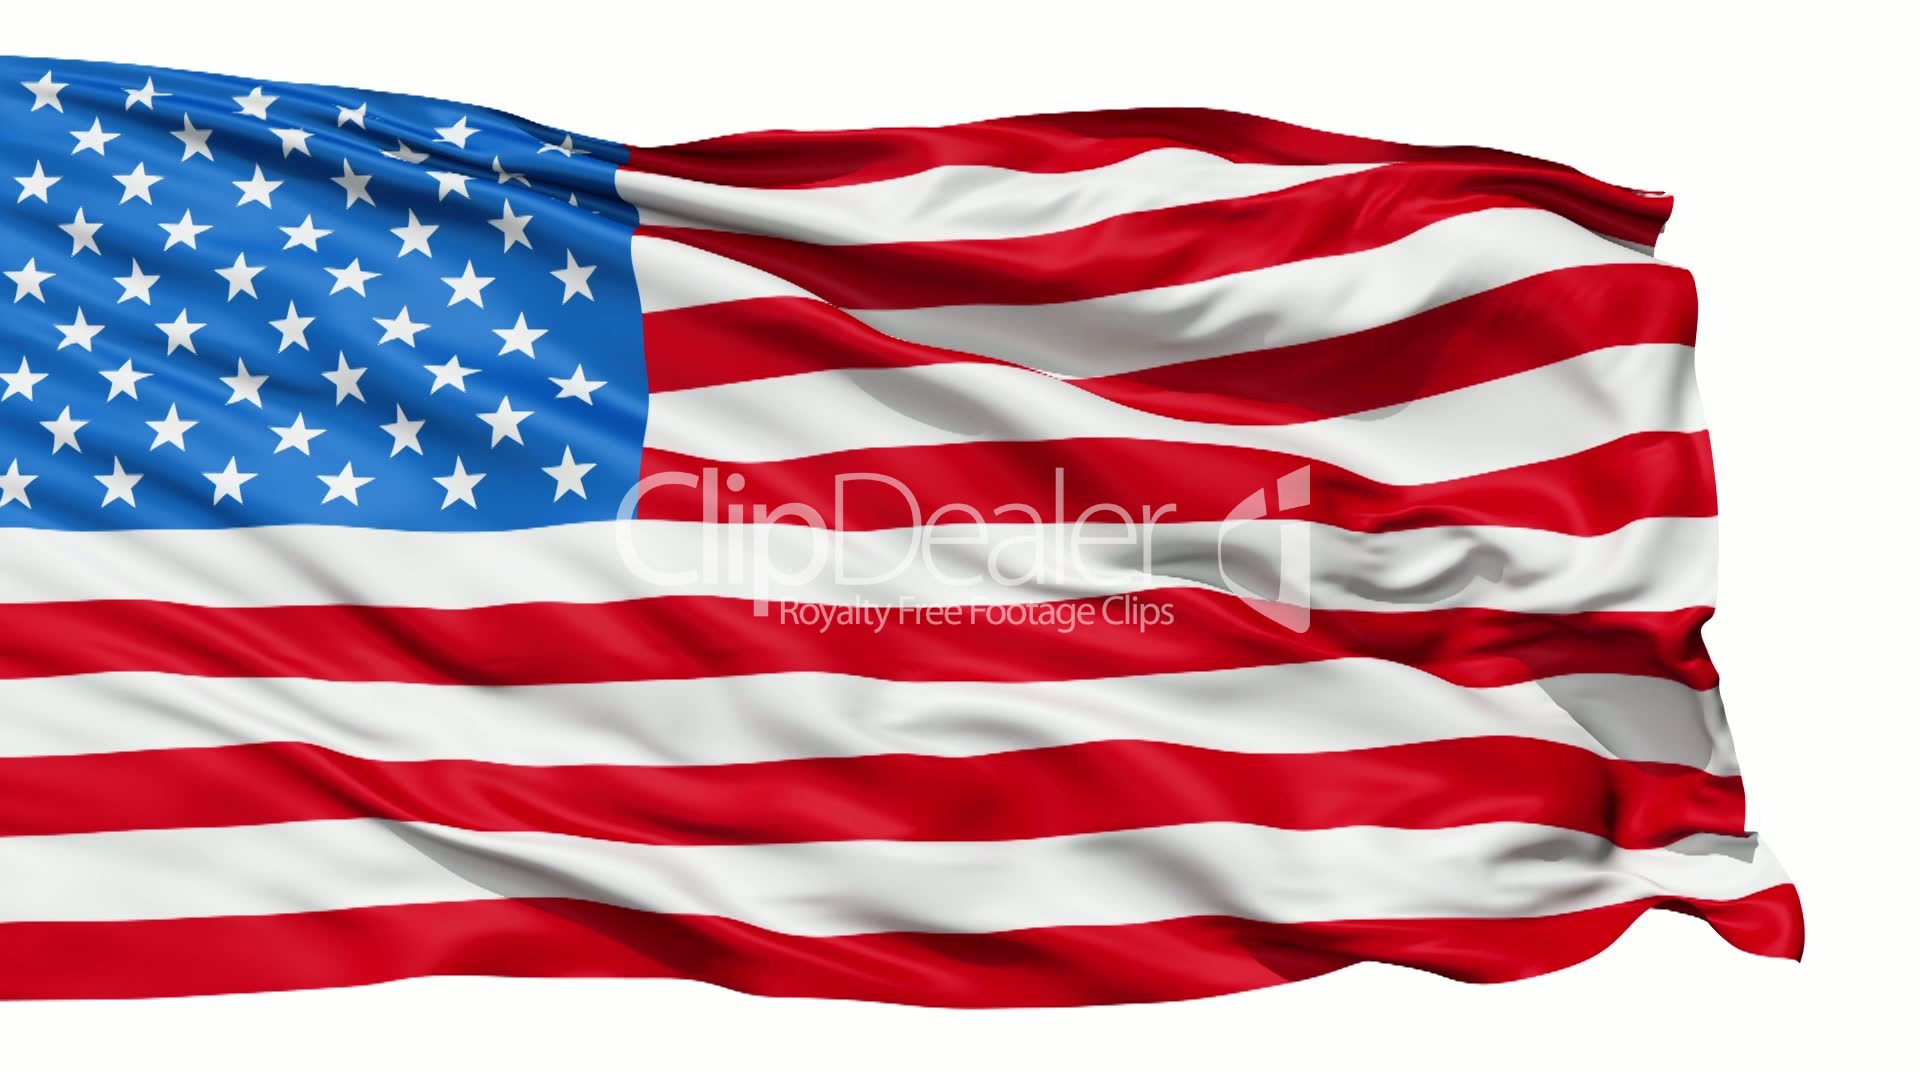 7ba37b2aa5d Realistic 3d seamless looping USA flag waving in the wind.  Royalty-free  video and stock footage